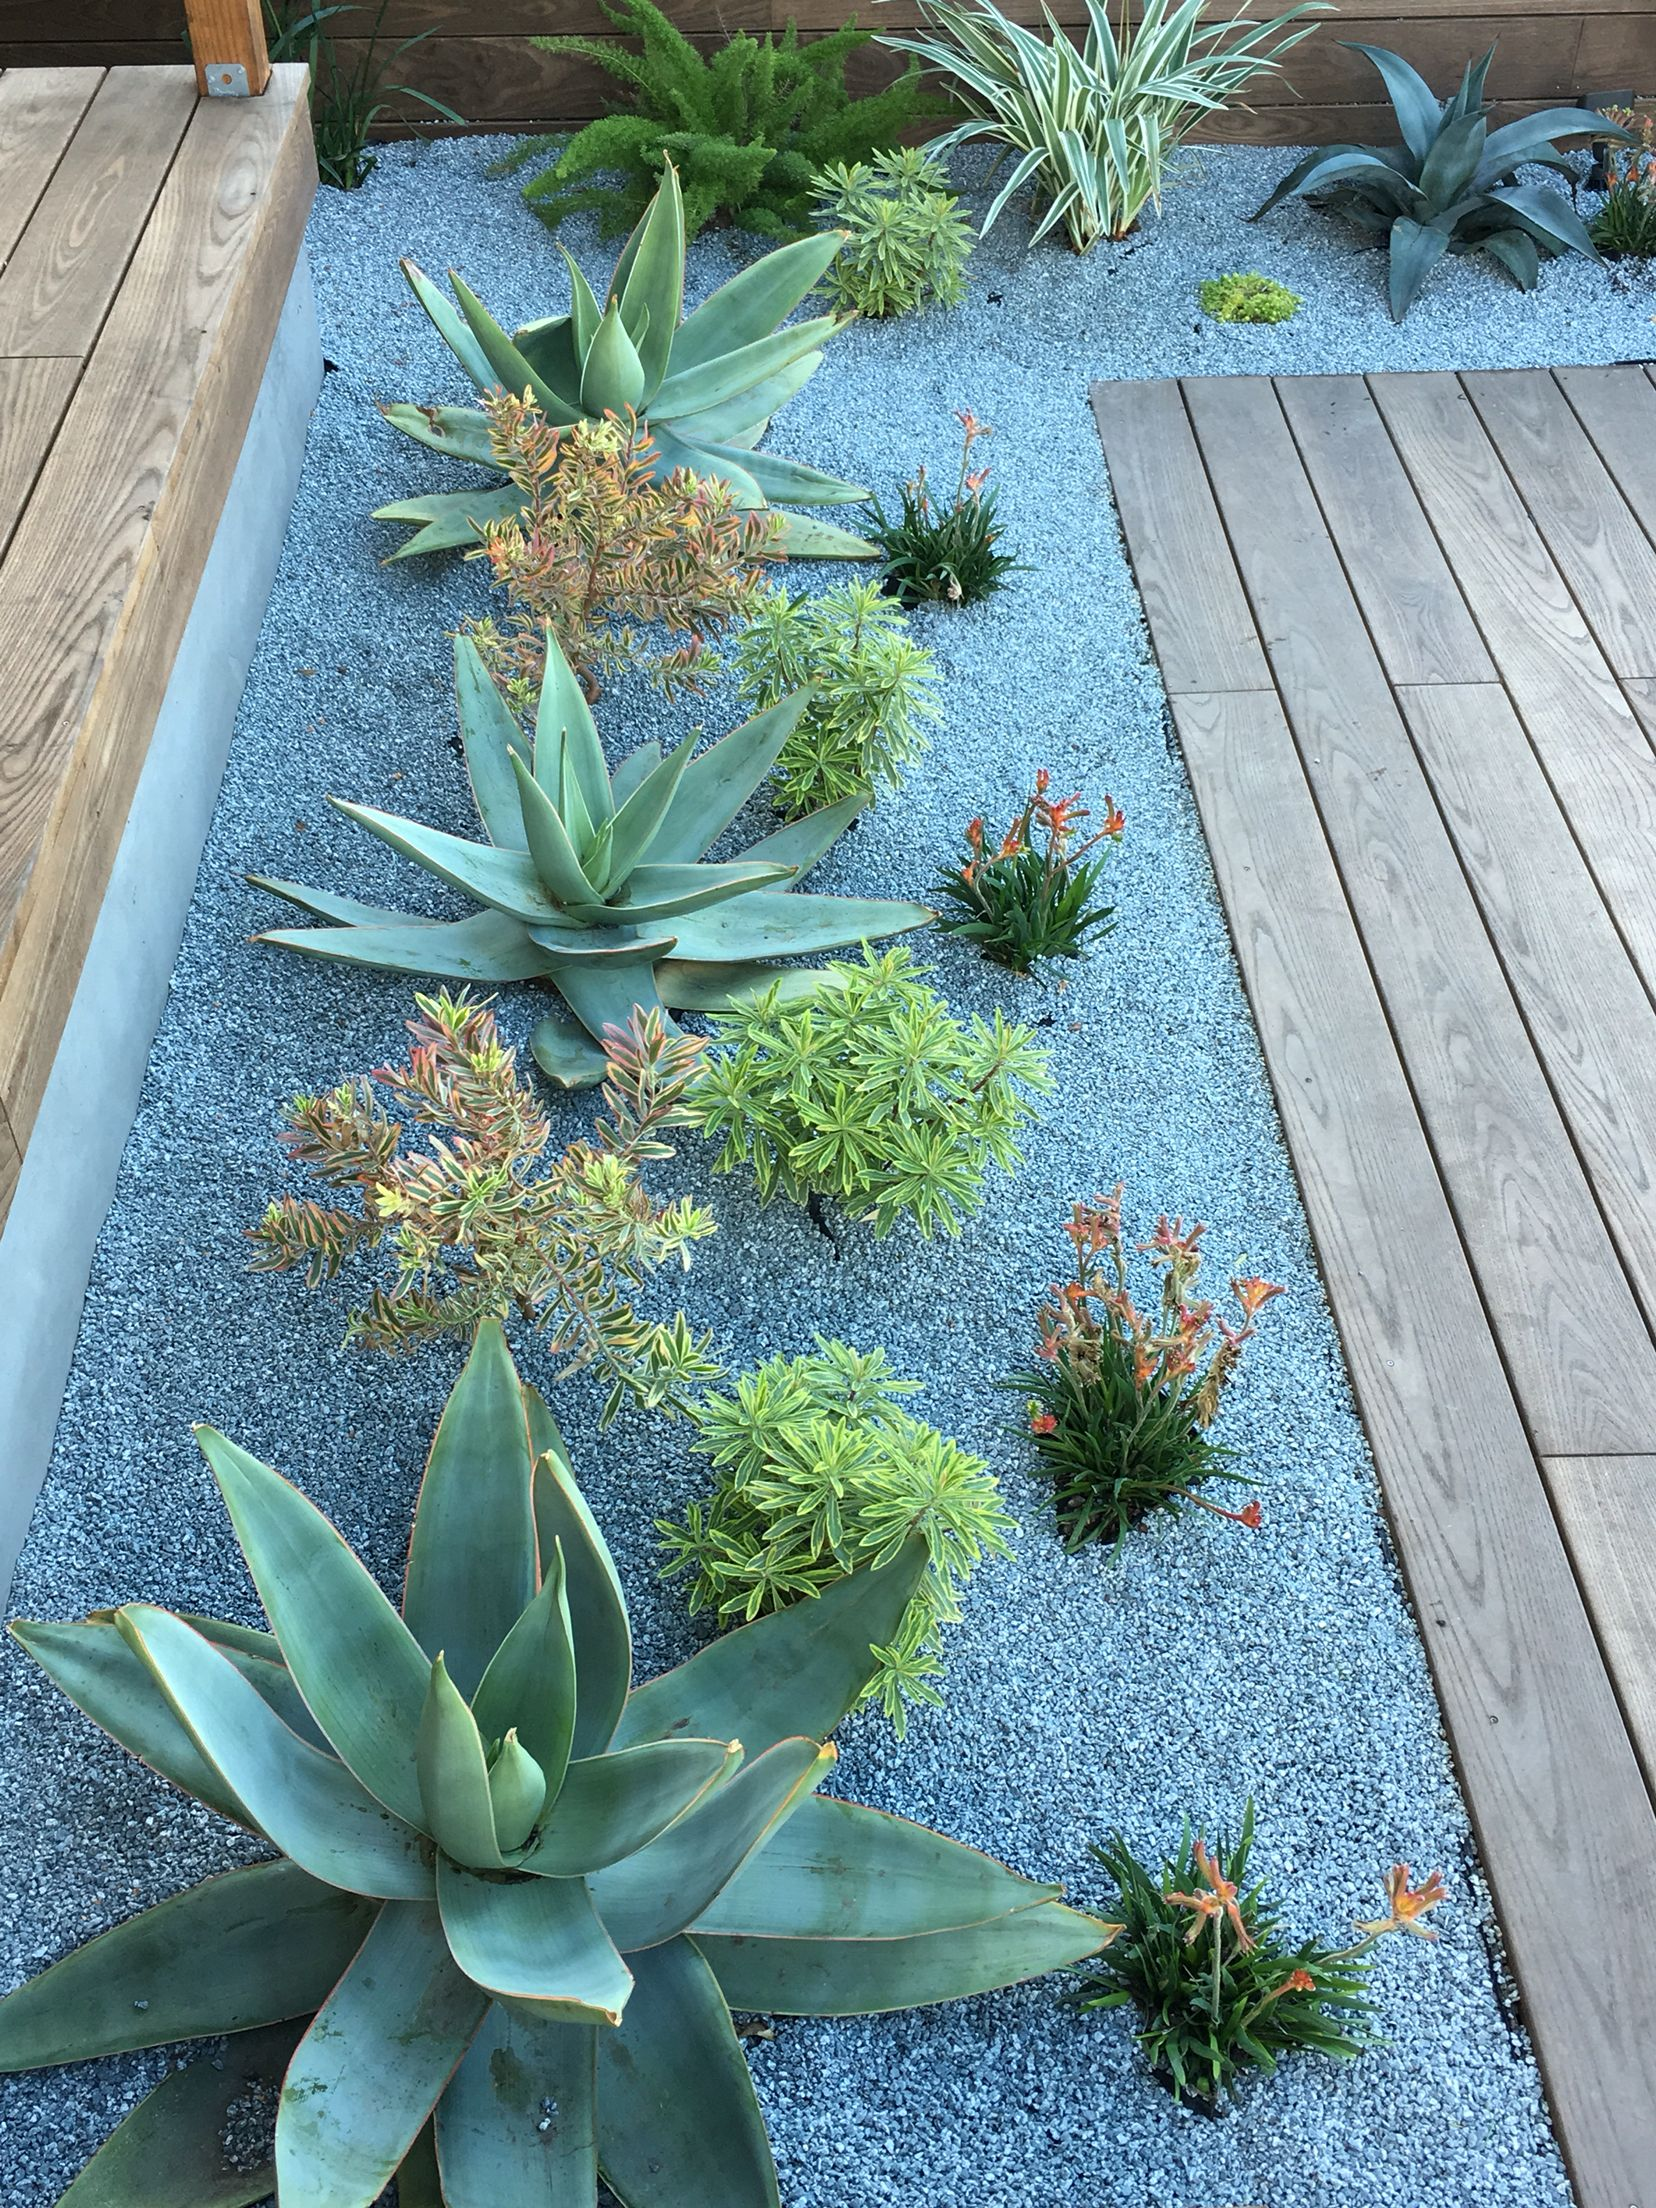 Steingarten Vorgarten Modern Drought Tolerant Plantings Aloes And Kangaroo Paw More